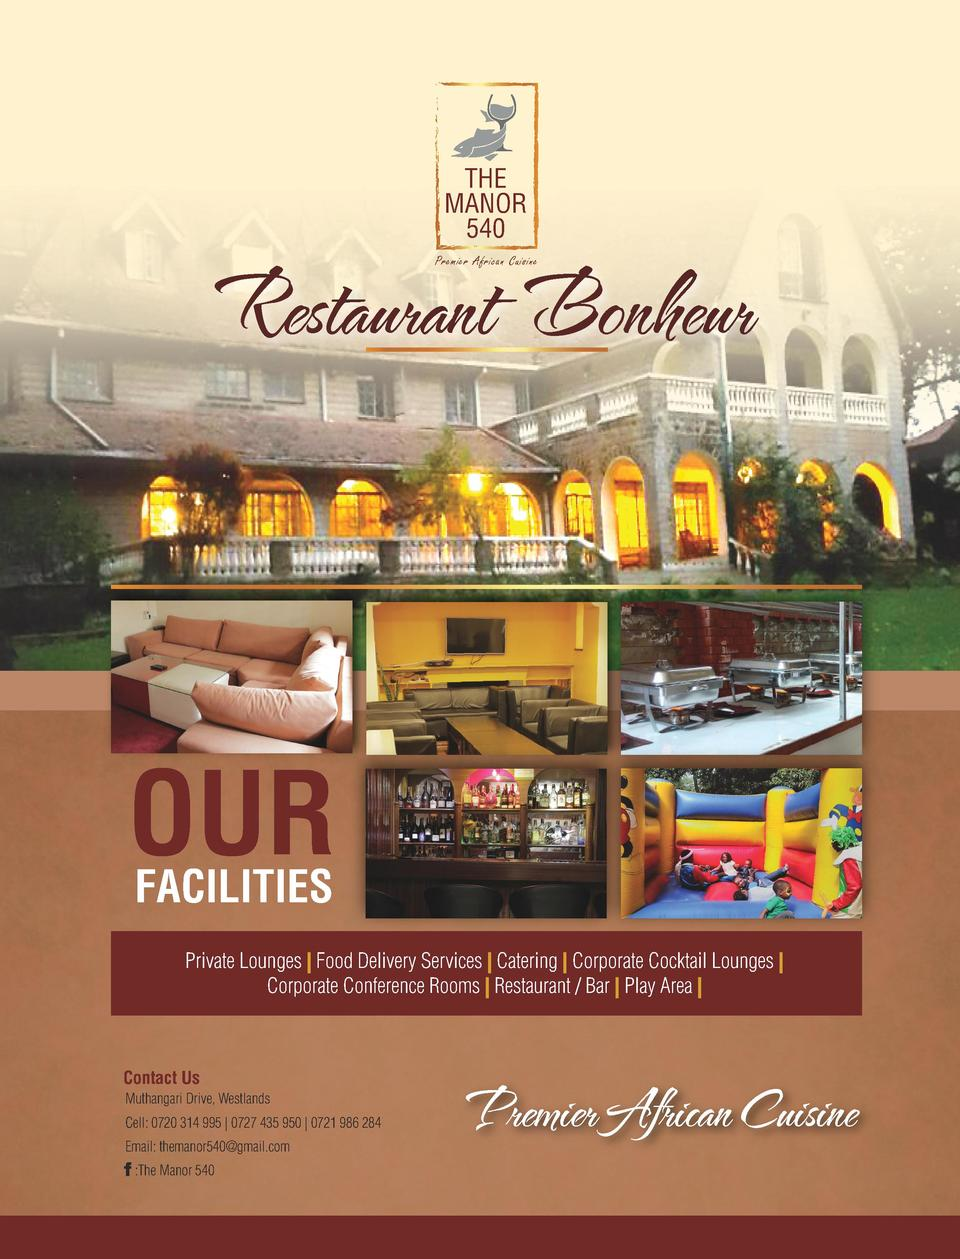 THE MANOR 540  Restaurant Bonheur Premier African Cuisine  OUR FACILITIES  Private Lounges   Food Delivery Services   Cate...